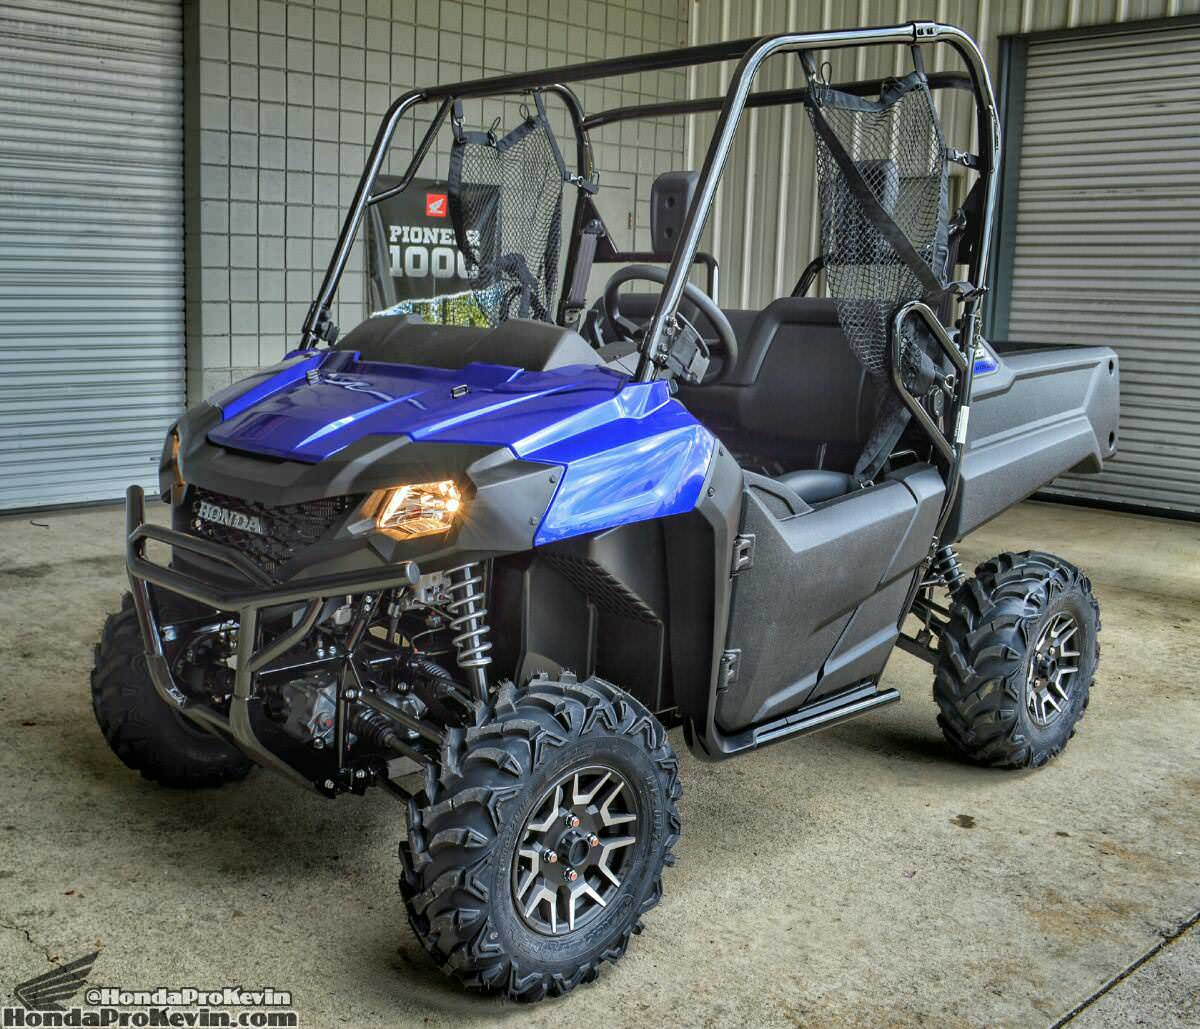 Honda Vermont 700 Specifications Ehow: 2017 Honda Pioneer 700 Review Specs Amp Changes Top